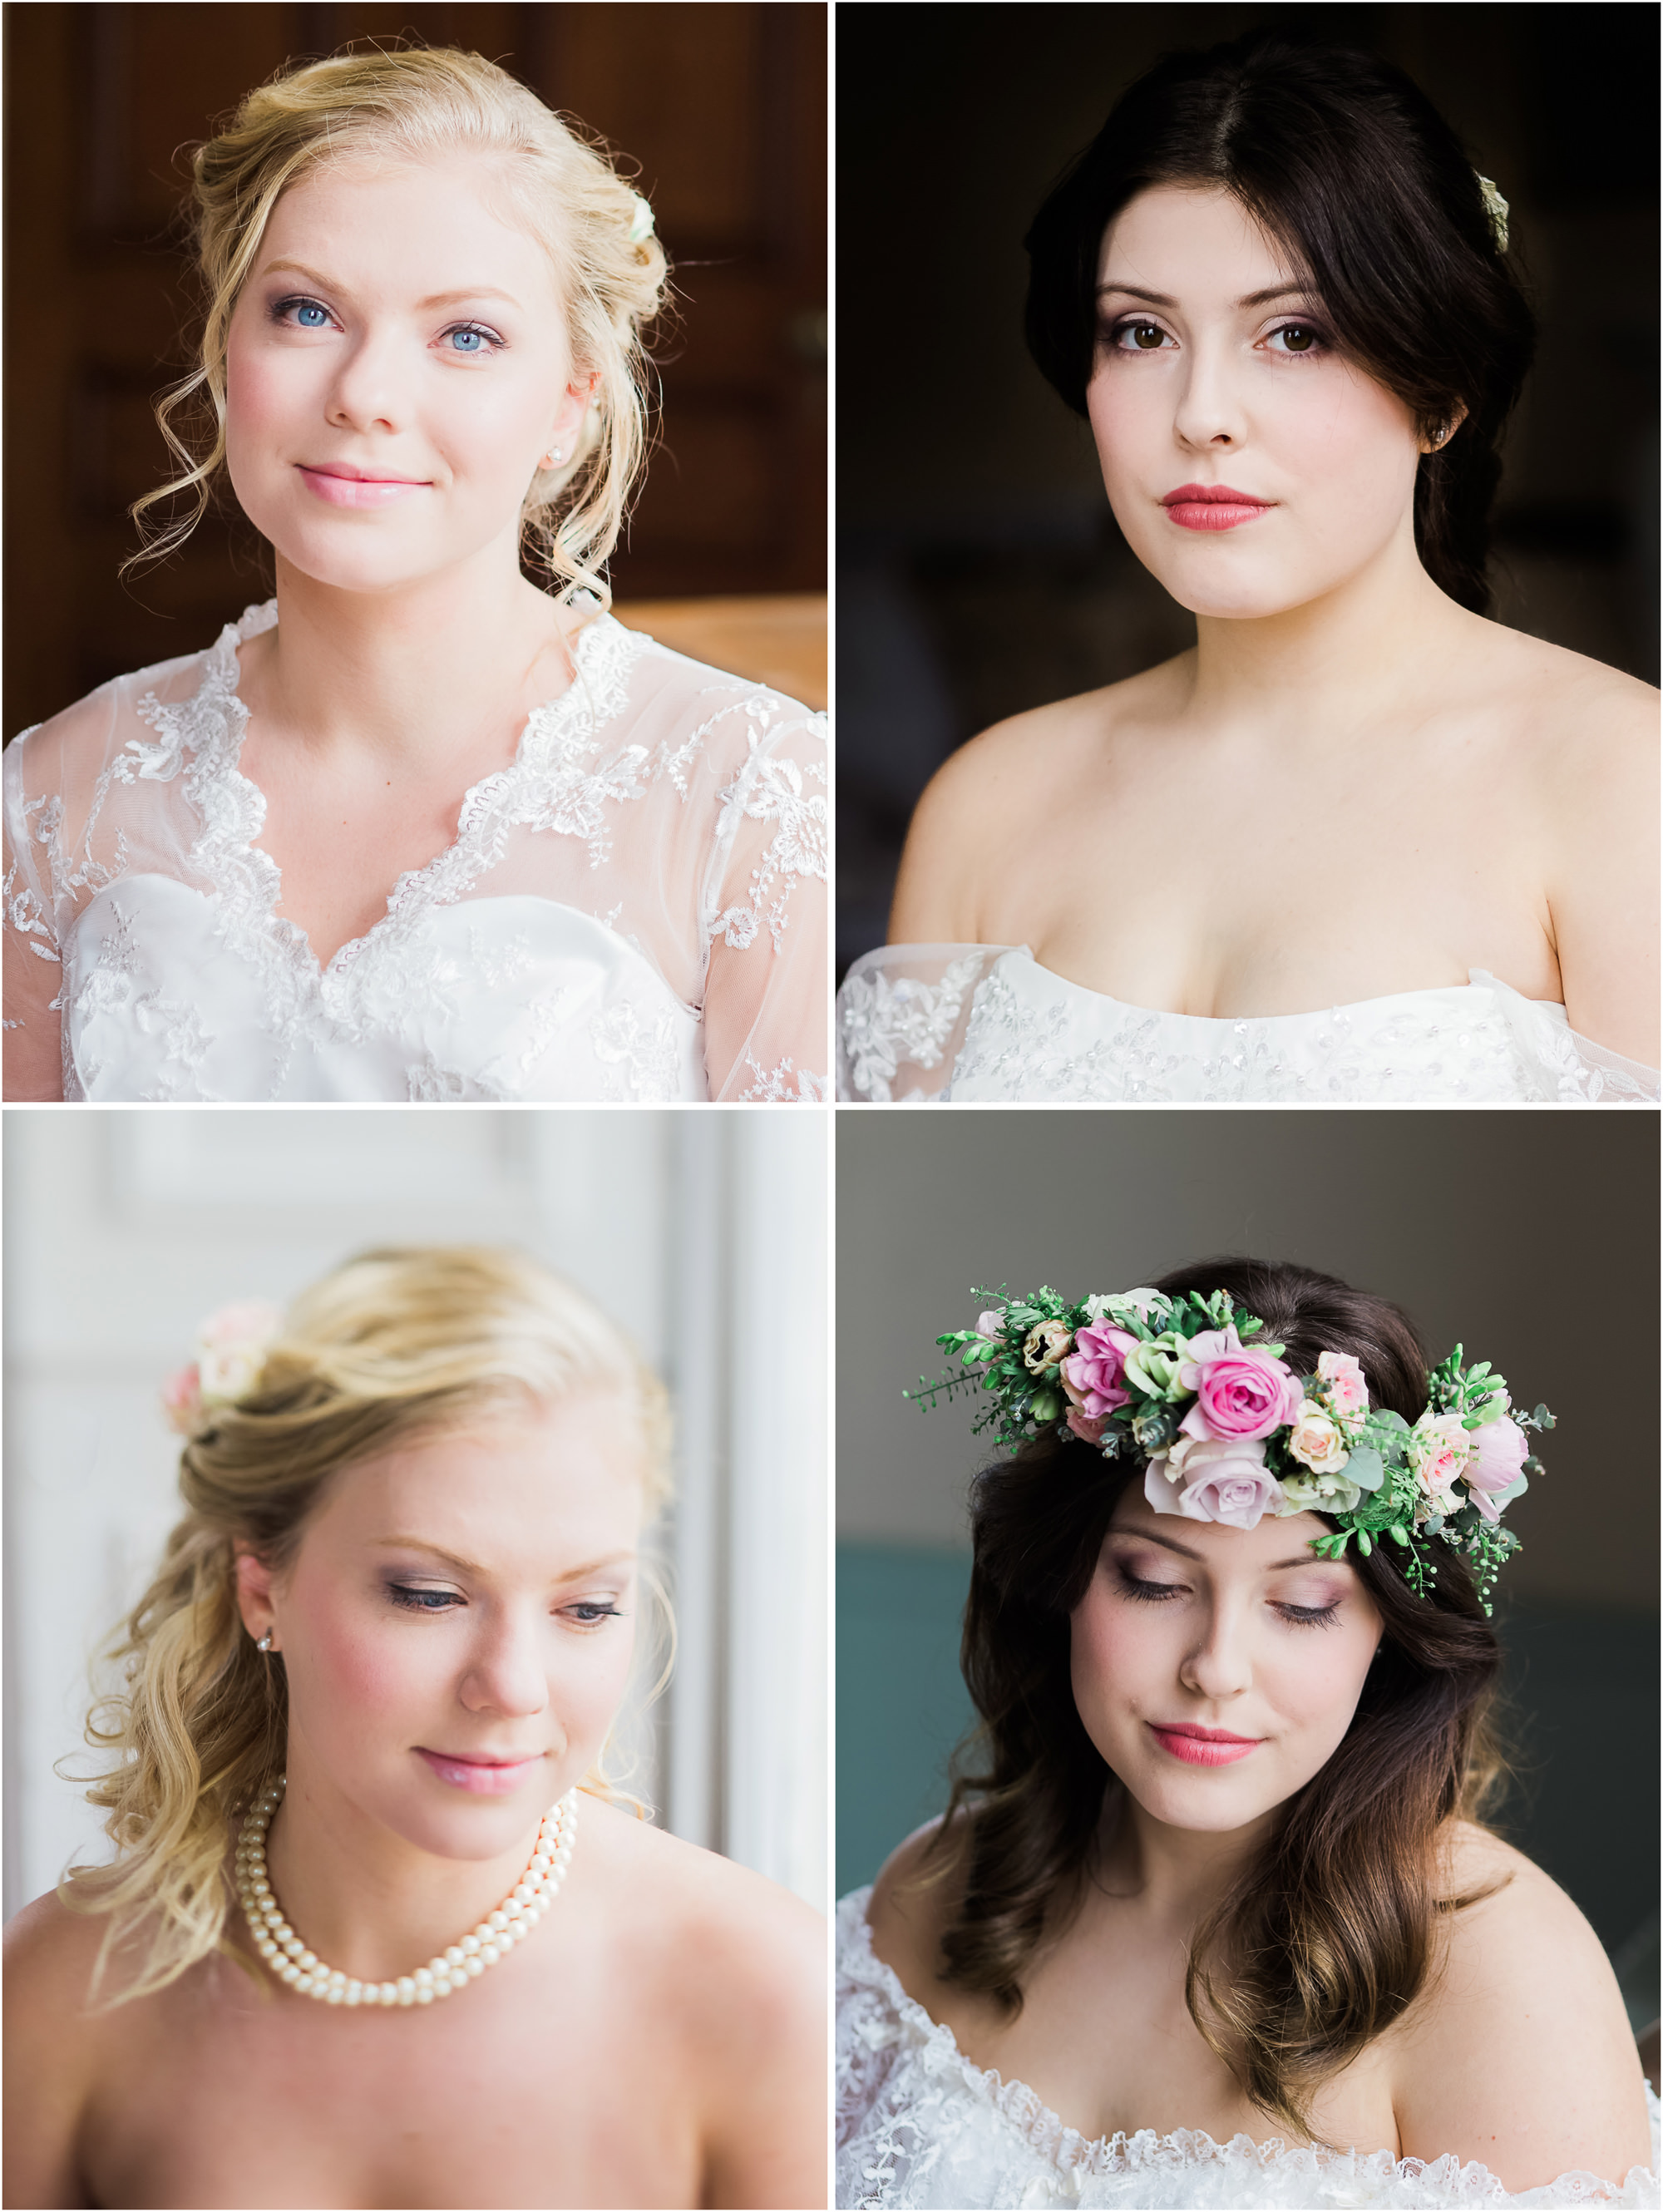 wedding hair and makeup portsmouth nh   portsmouth nh wedding makeup